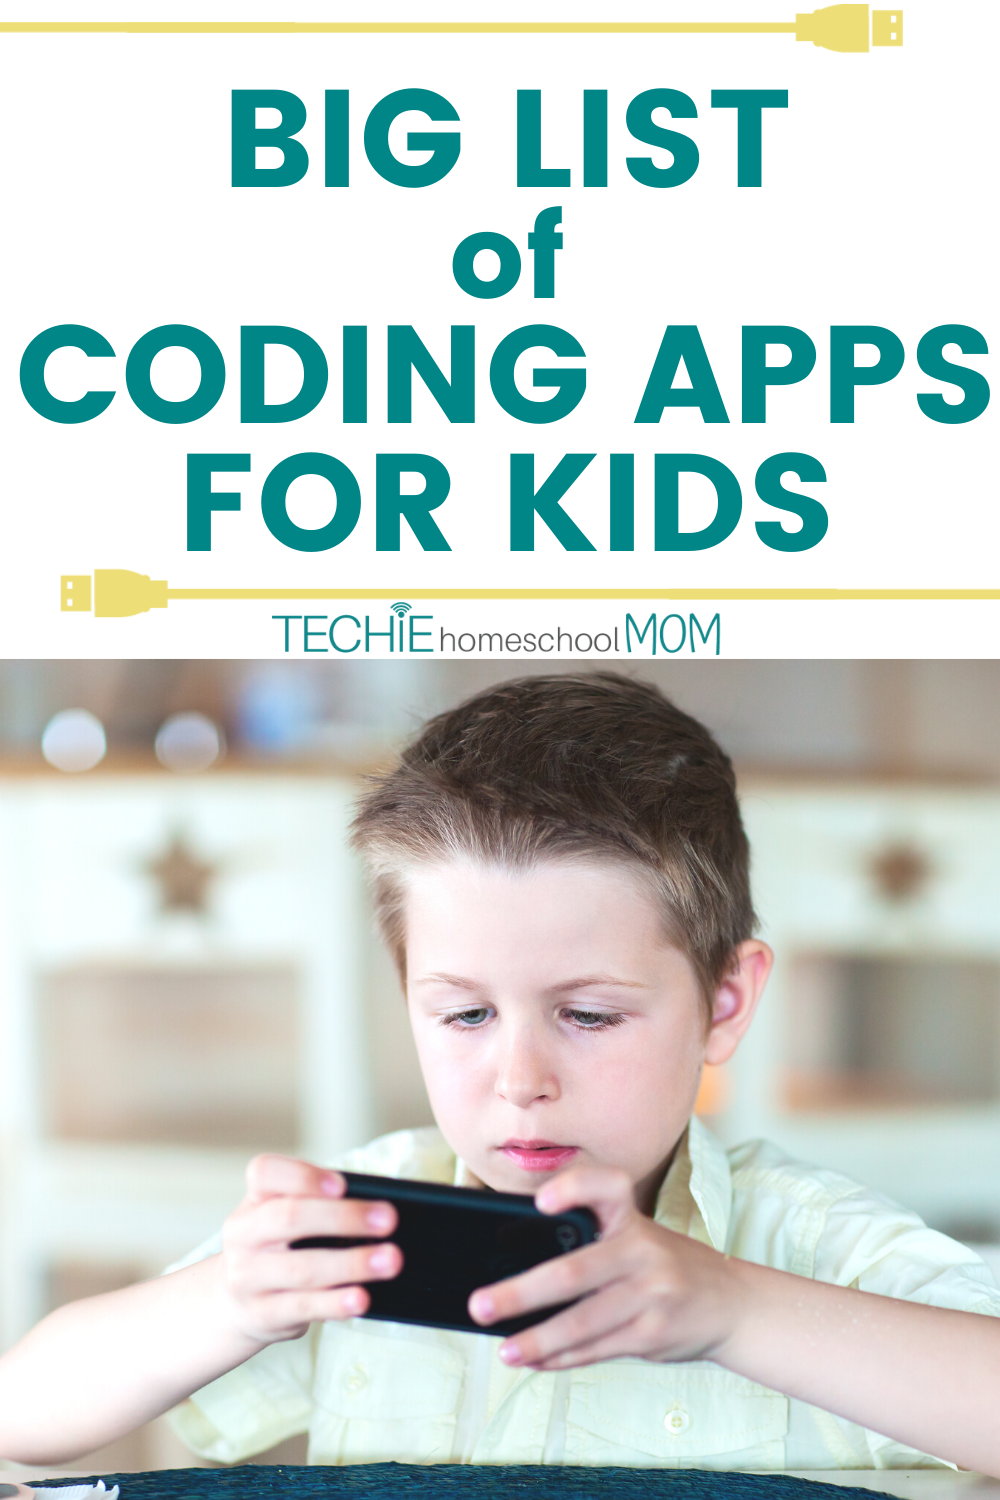 Got a kid interested in coding? But don't want to invest time or money to teach them? Try out these coding apps for kids to get them started.